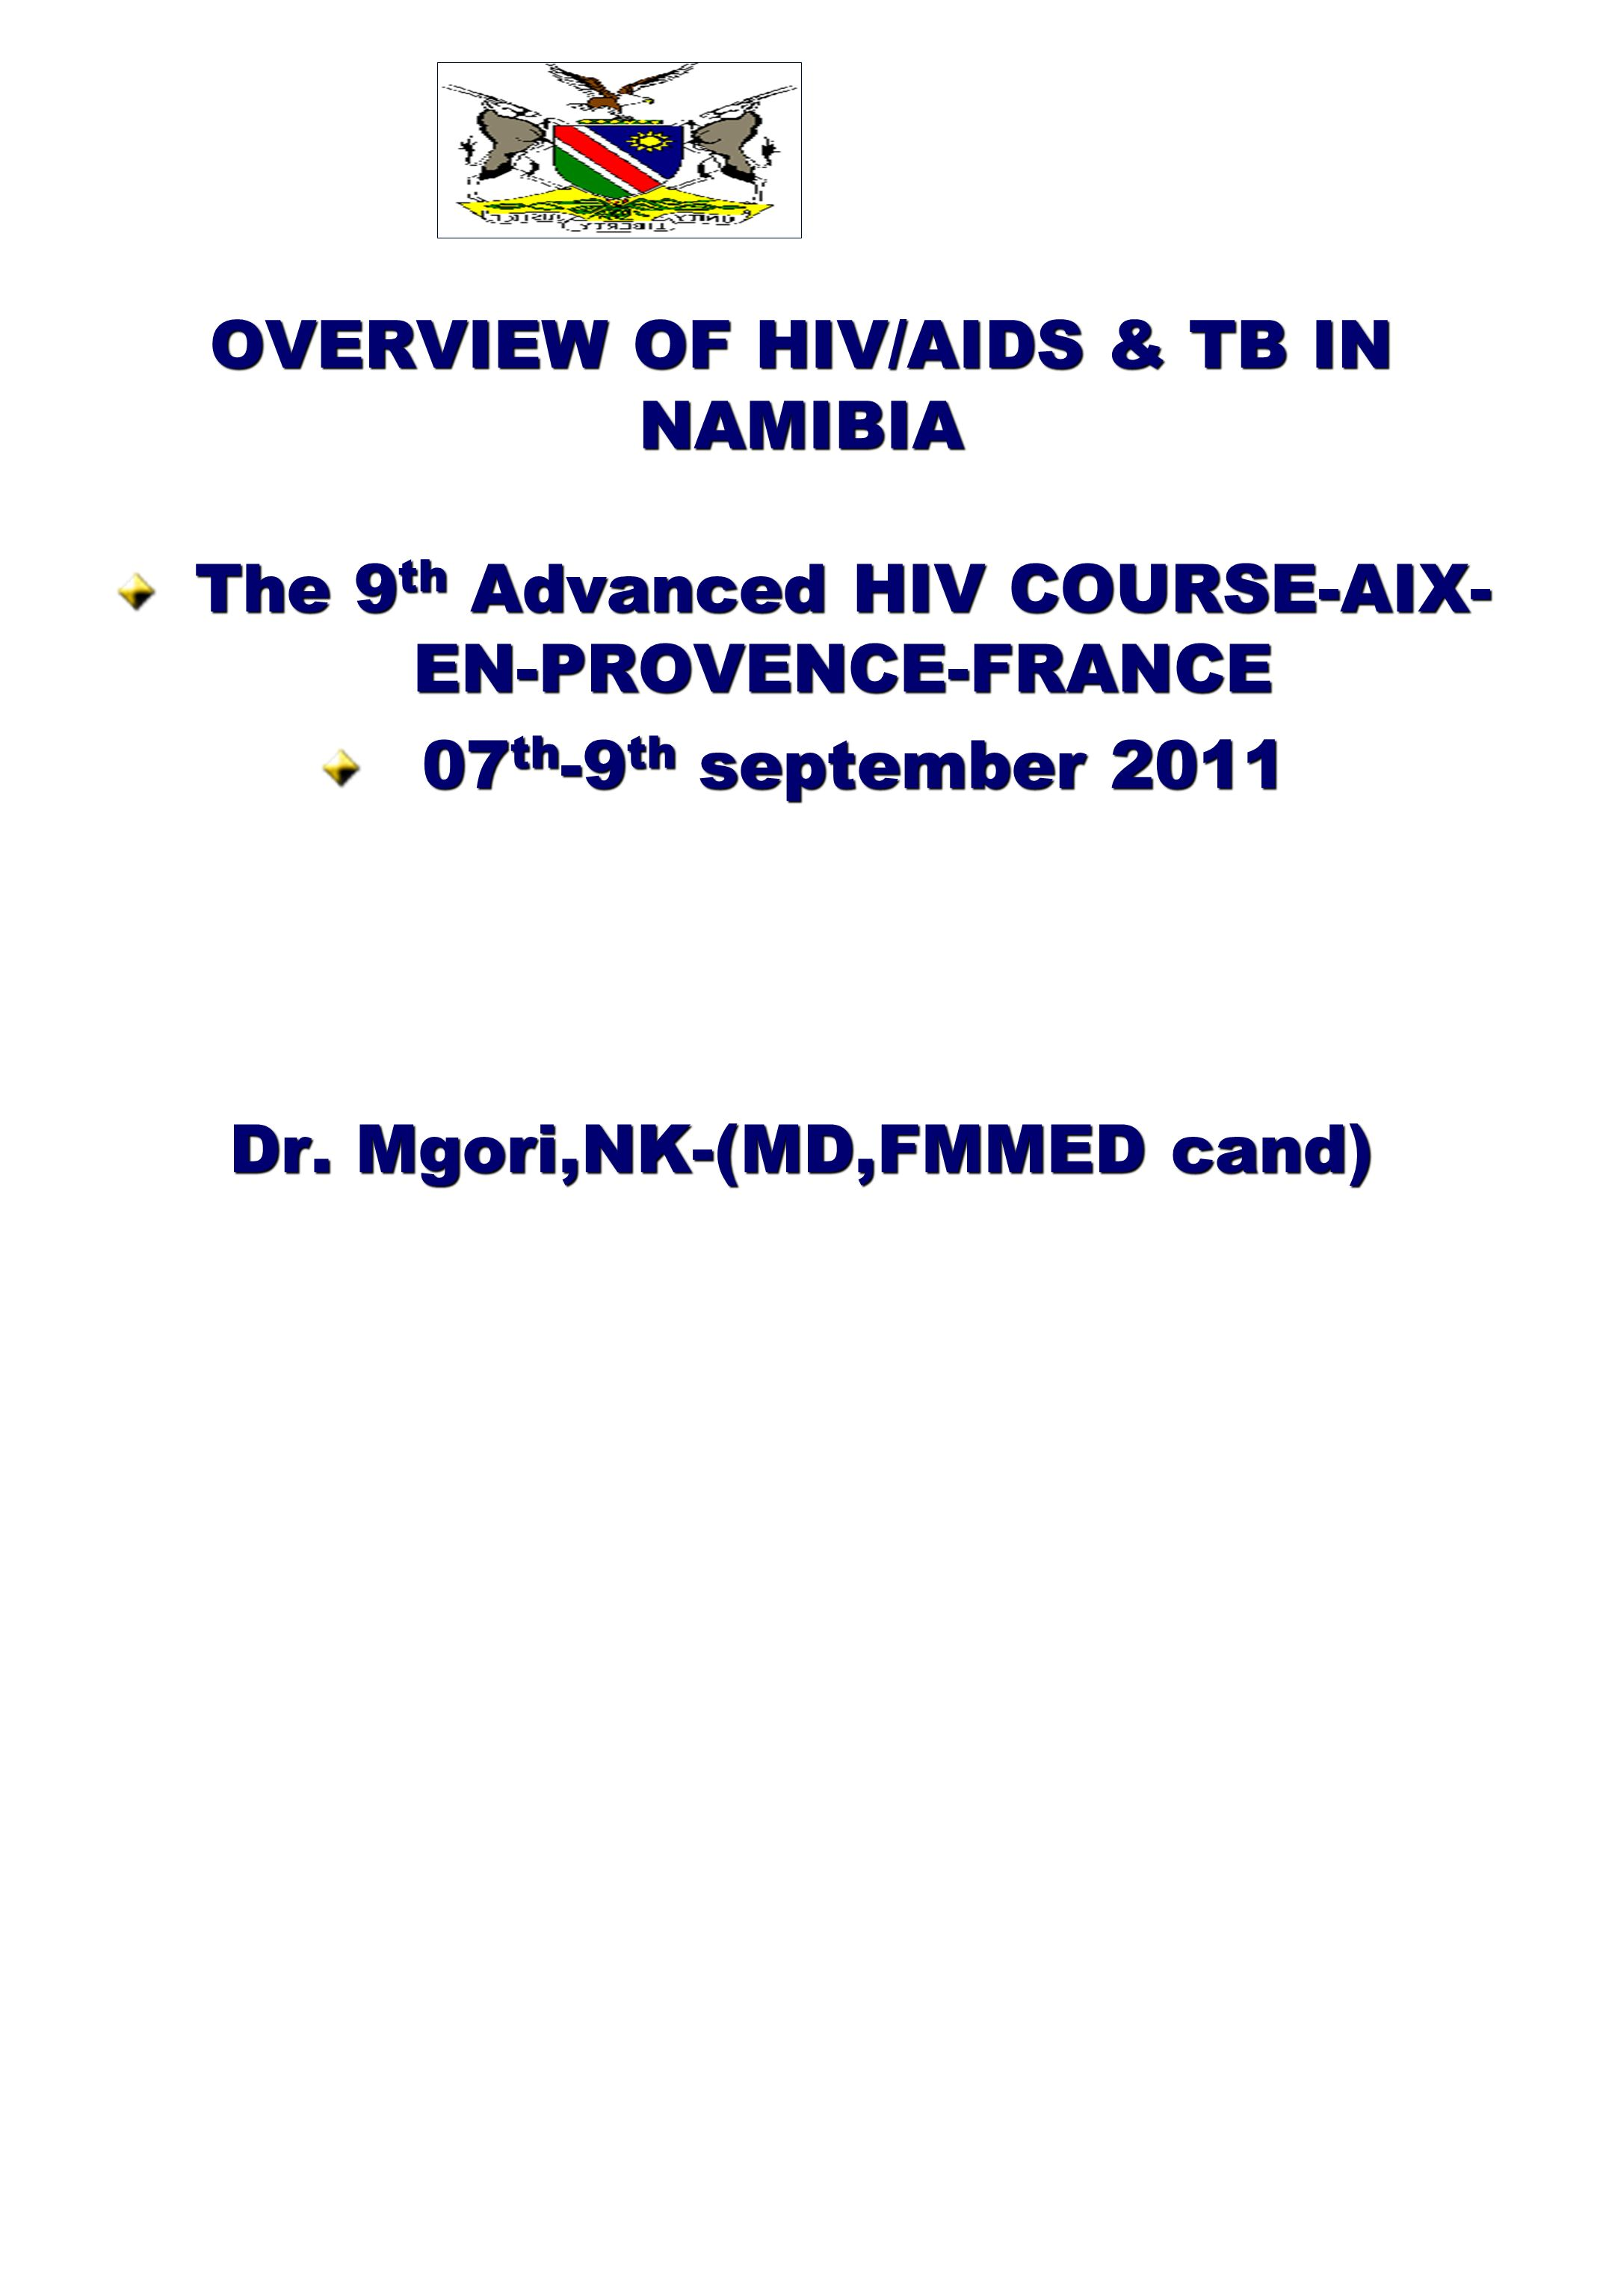 OVERVIEW OF HIV/AIDS & TB IN NAMIBIA The 9 th Advanced HIV COURSE-AIX- EN-PROVENCE-FRANCE 07 th -9 th september 2011 07 th -9 th september 2011 Dr.